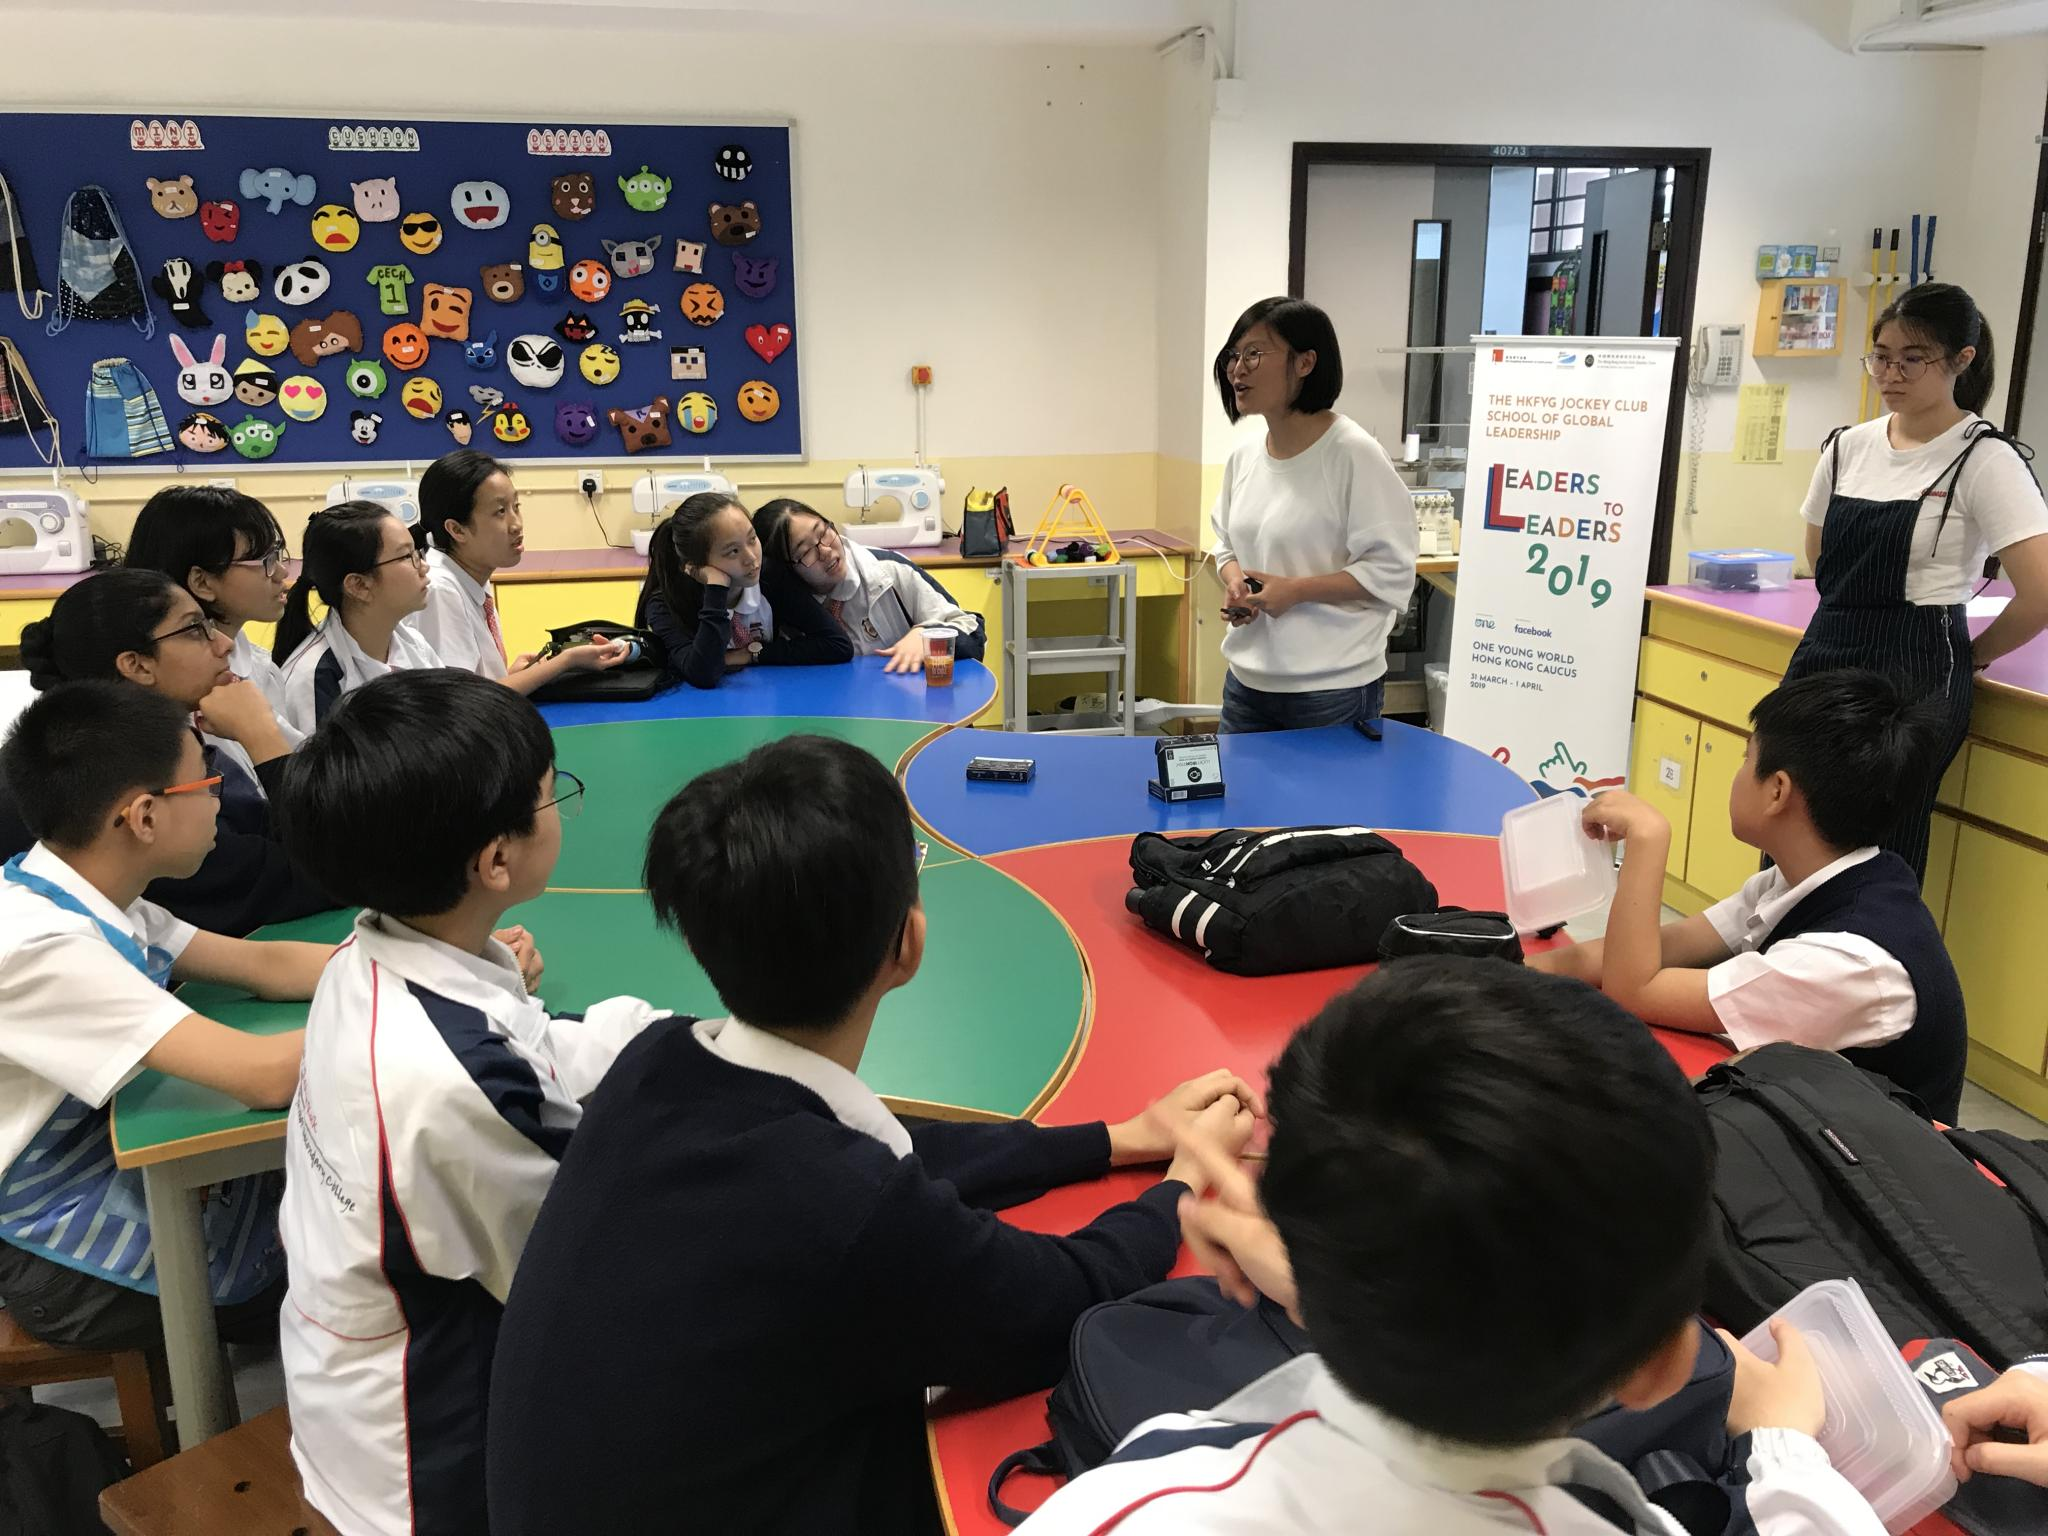 A staff from HKFYG is explaining what a Lucky Iron Fish is to the students.